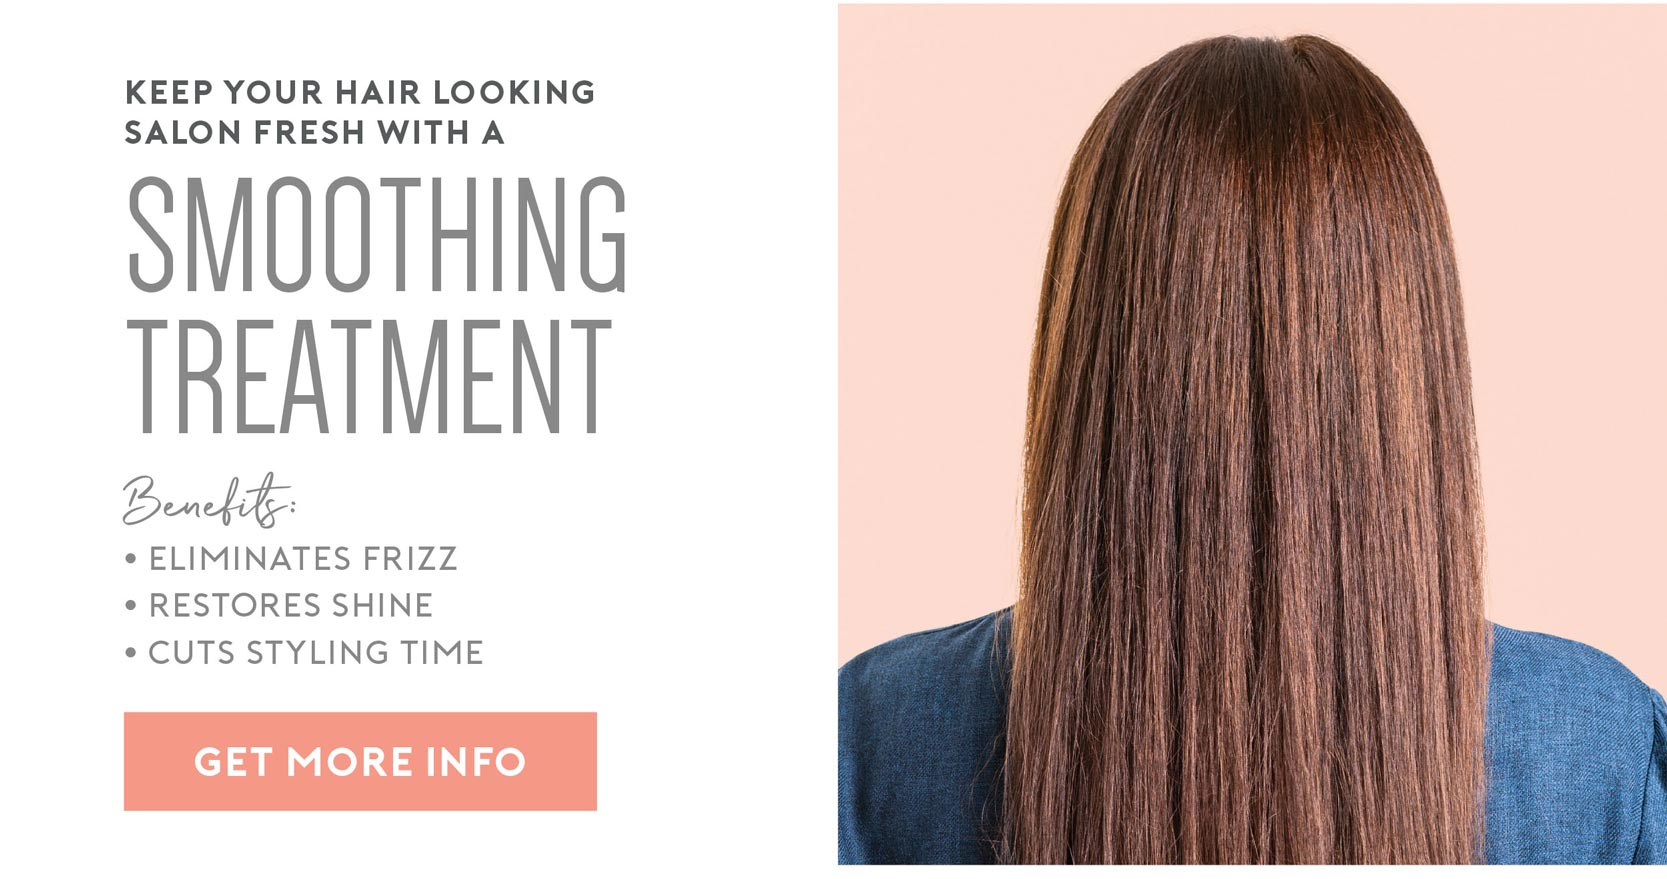 Keep your hair looking salon fresh with a smoothing treatment. Benefits include: Eliminate frizz, restore shine, cut styling time.